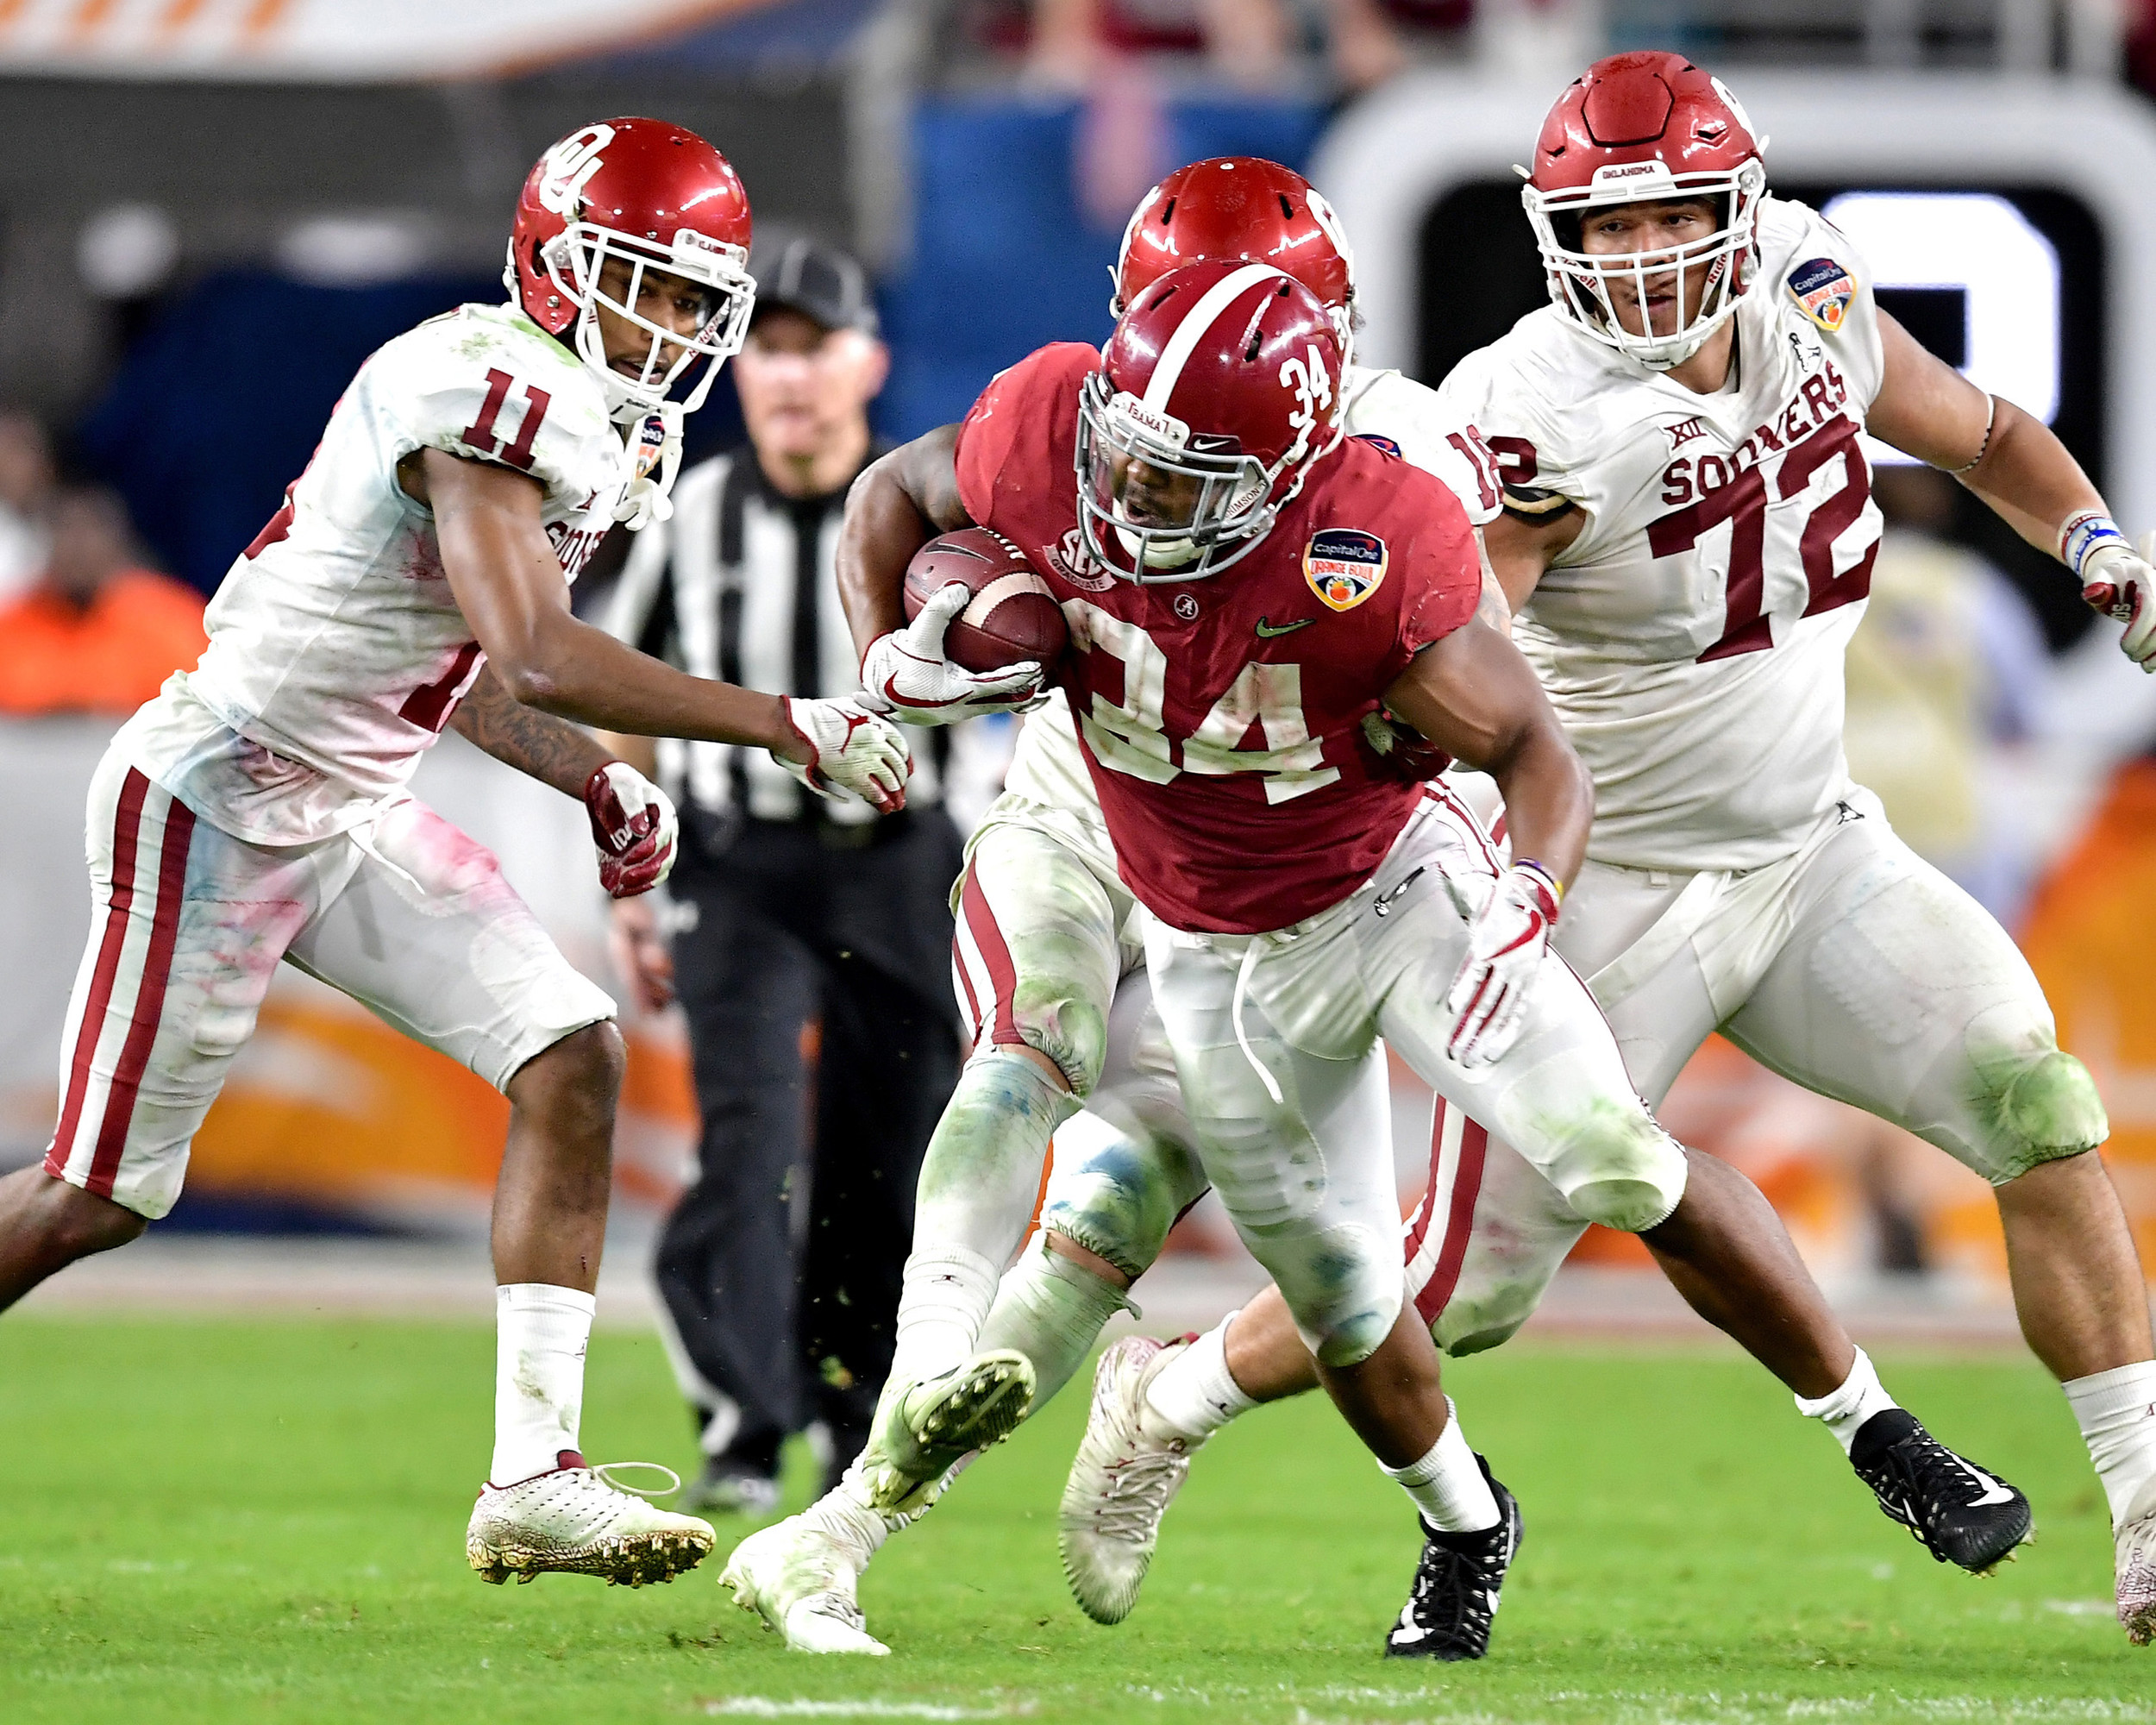 From the second half of the Capital One Orange Bowl, featuring the Alabama Crimson Tide and the Oklahoma Sooners, at Hard Rock Stadium in Miami Gardens, Fla., Saturday, Dec. 29, 2018. Alabama wins 45-34. (Photo by Lee Walls)